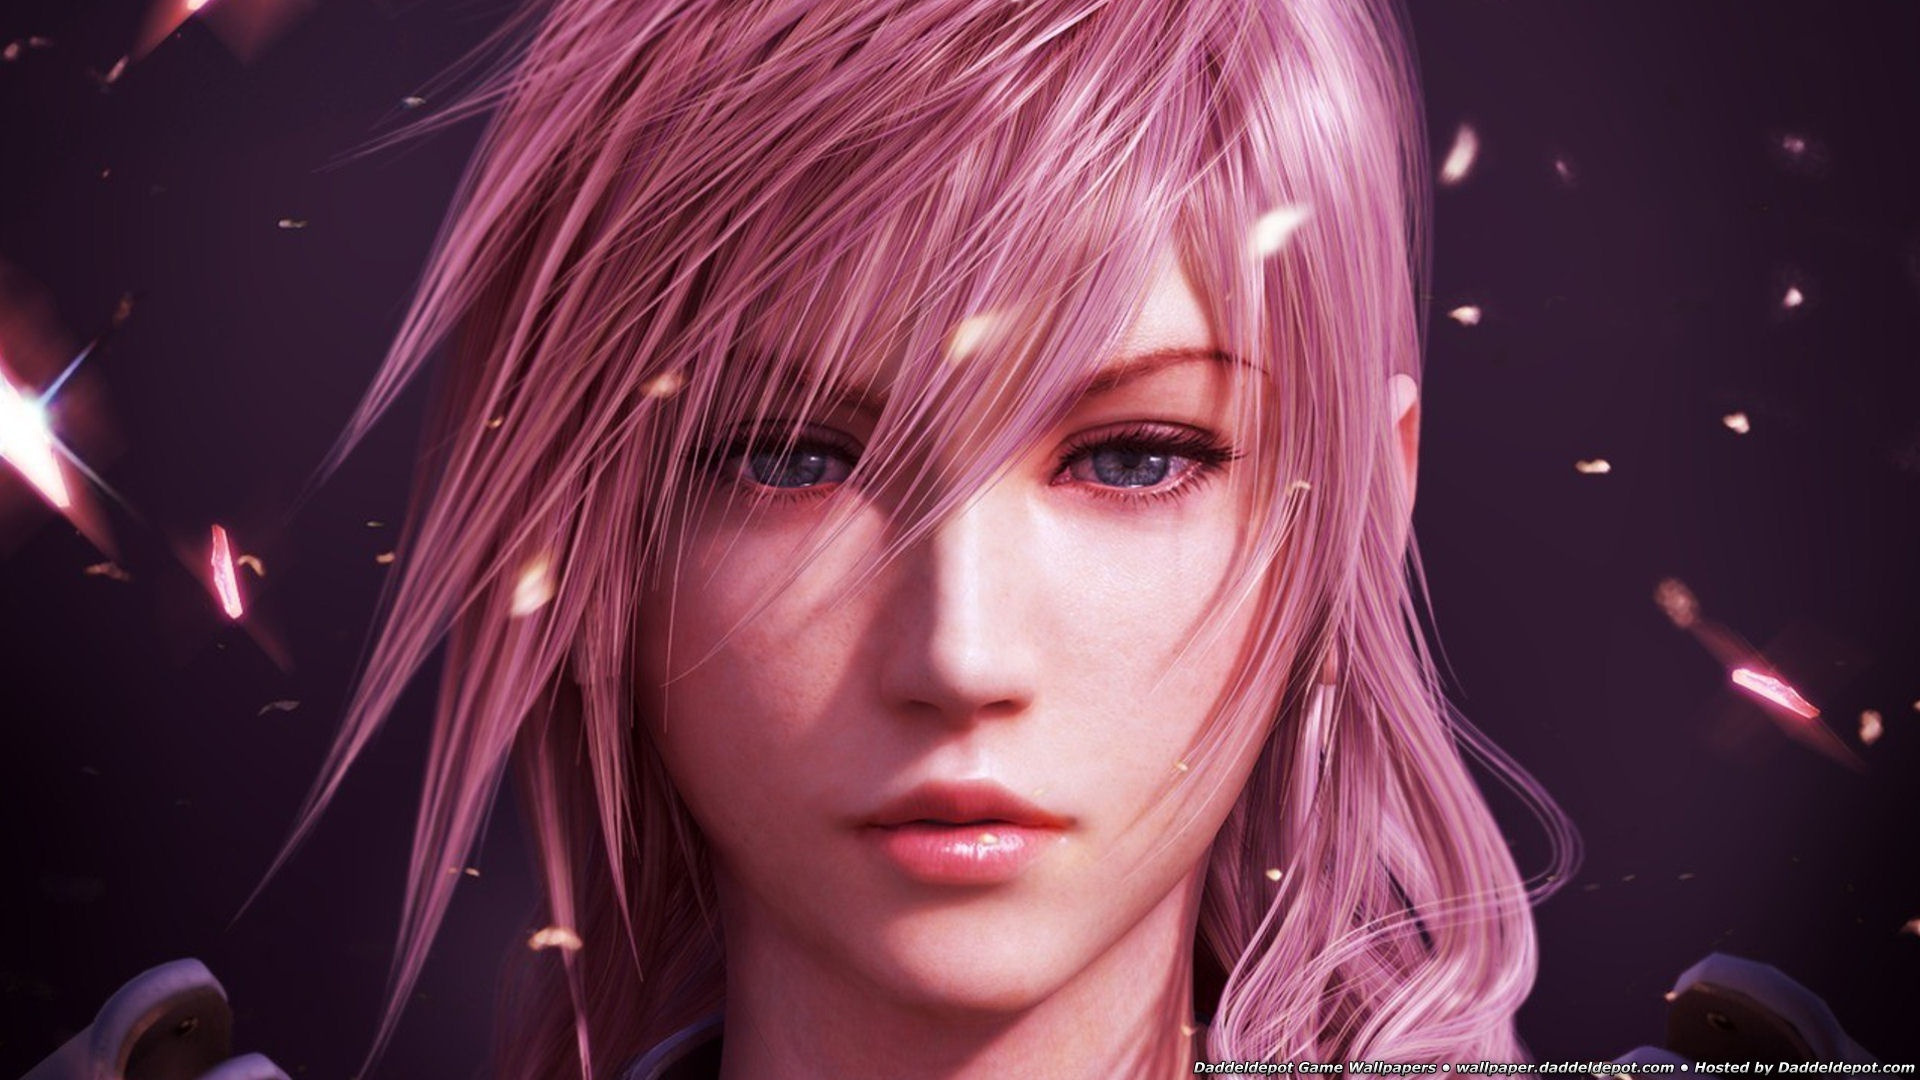 http://www.inmotiongaming.com/images/wallpapers/final-fantasy-xIII-2/Final-Fantasy-XIII-2-Lighting-3.jpg